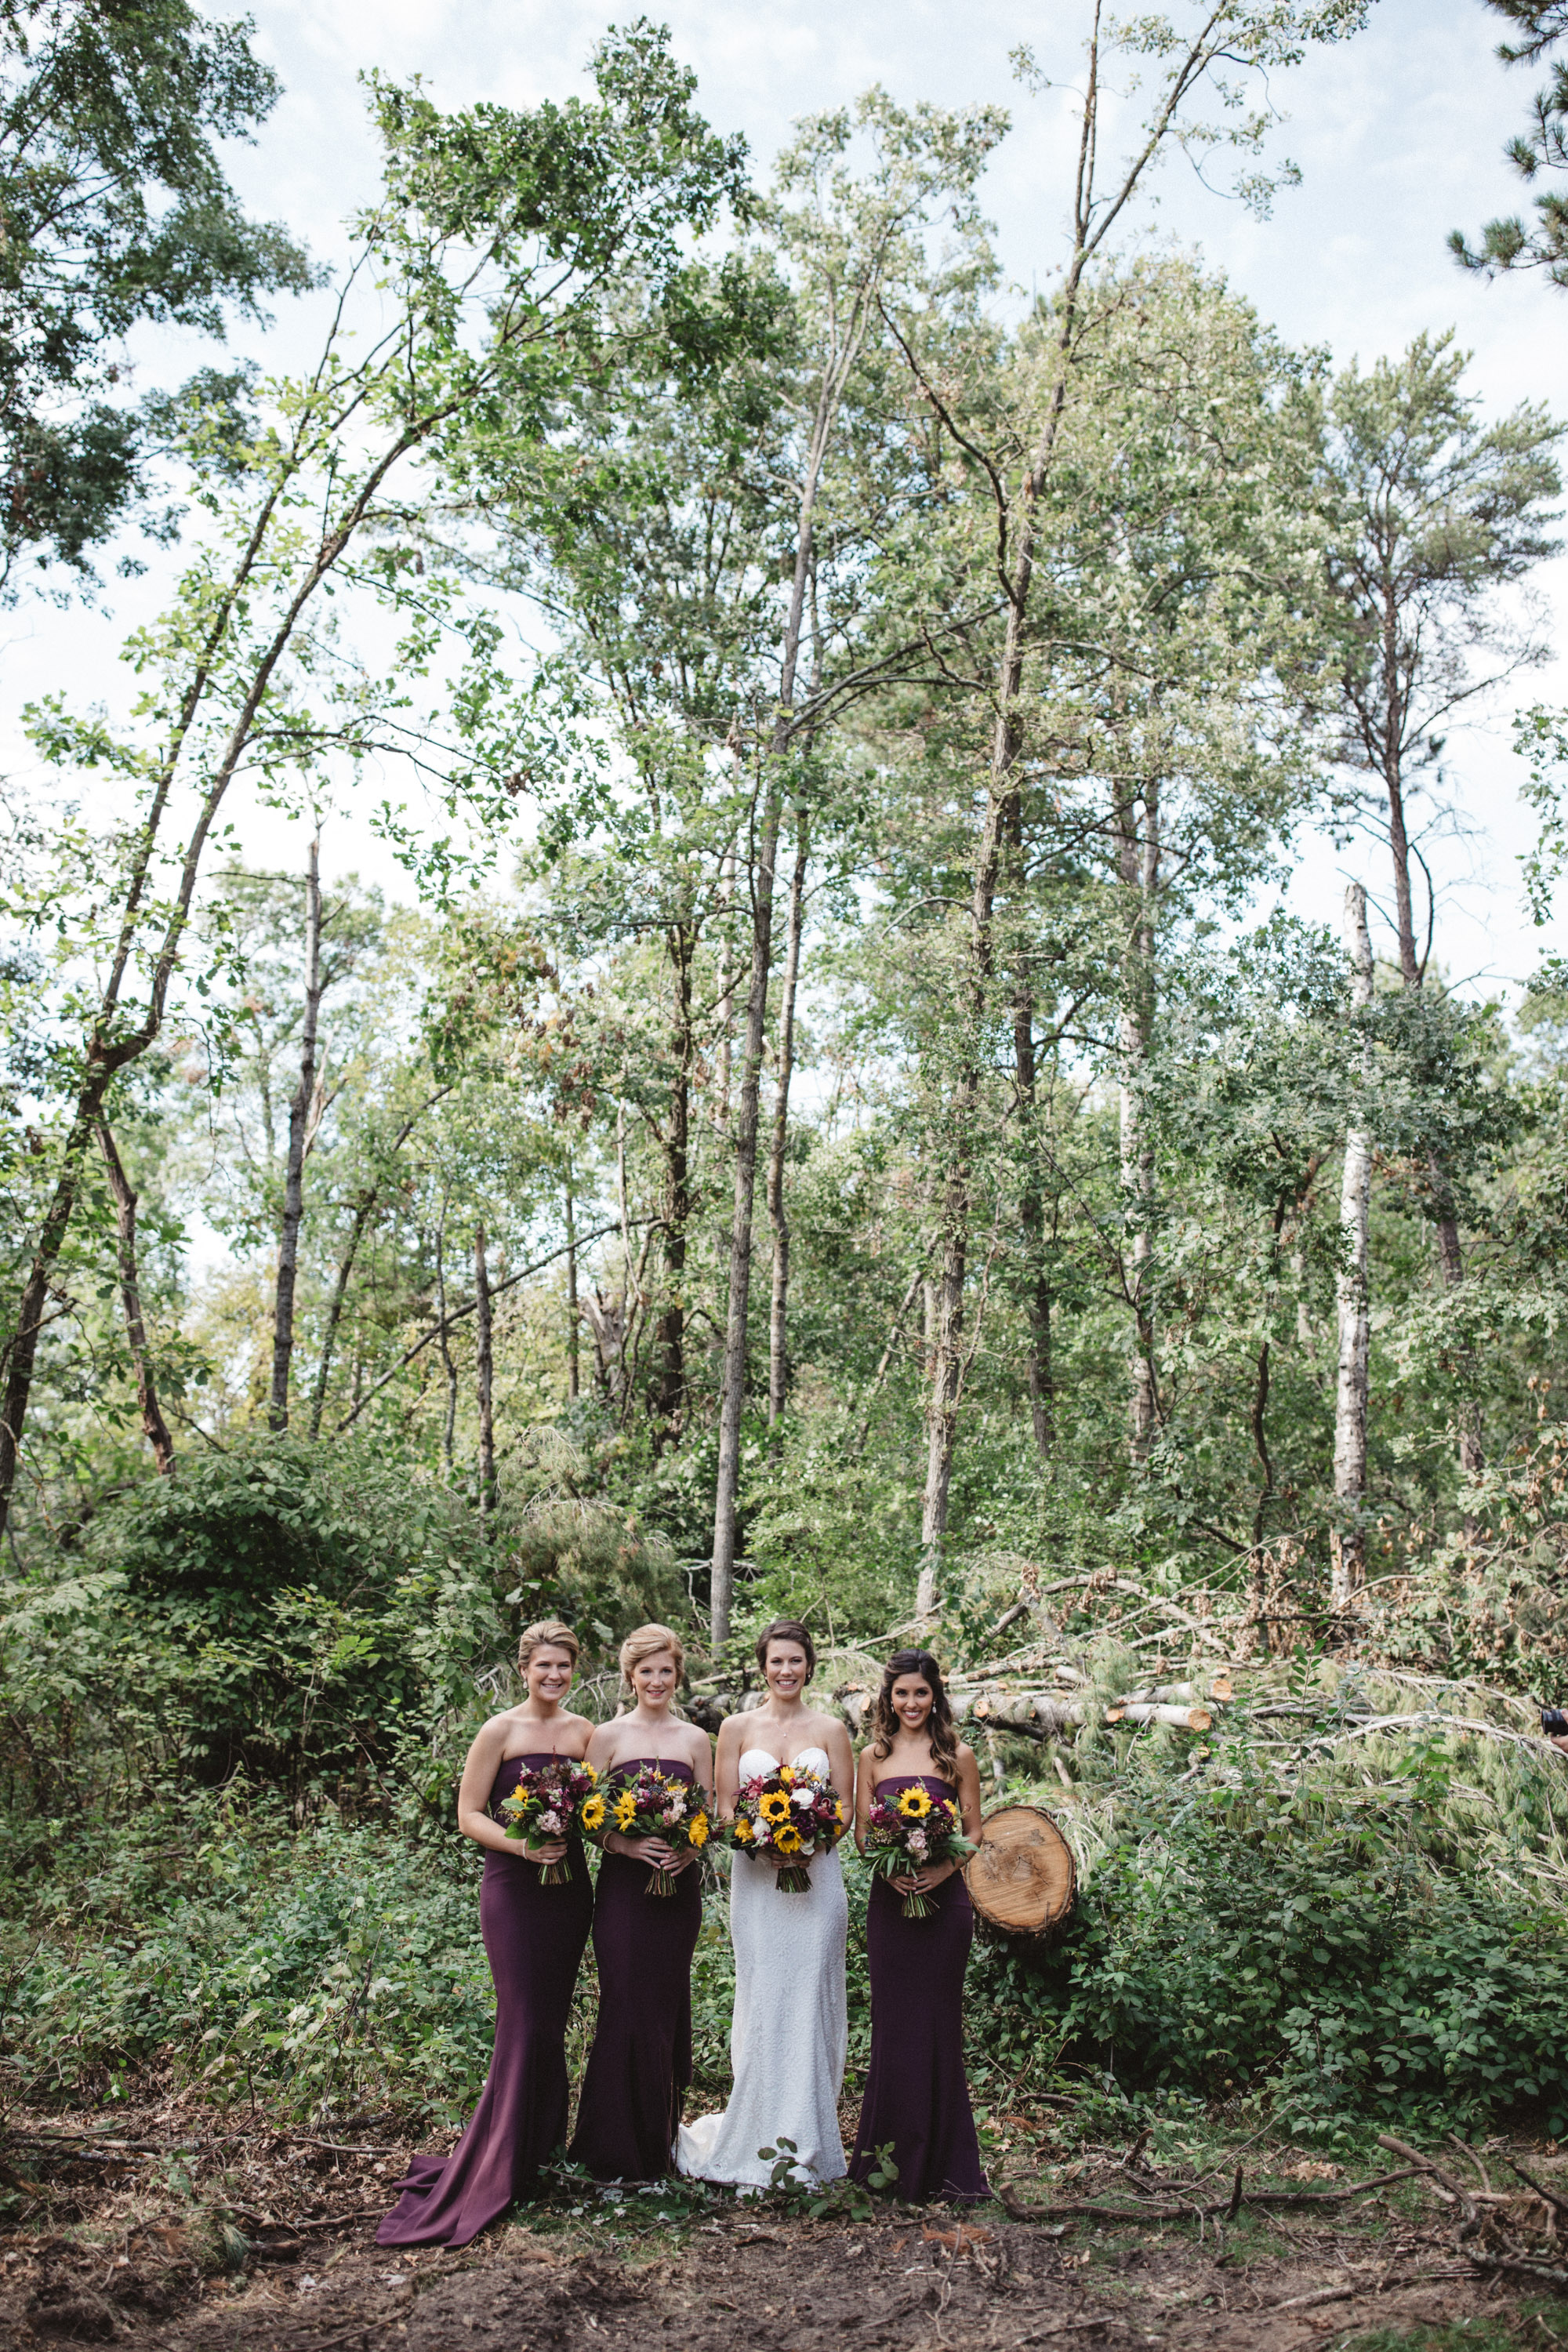 Bride and bridesmaids in the woods at Grand View lodge in Northern Minnesota. Wedding photography by Britt DeZeeuw, Brainerd photographer.